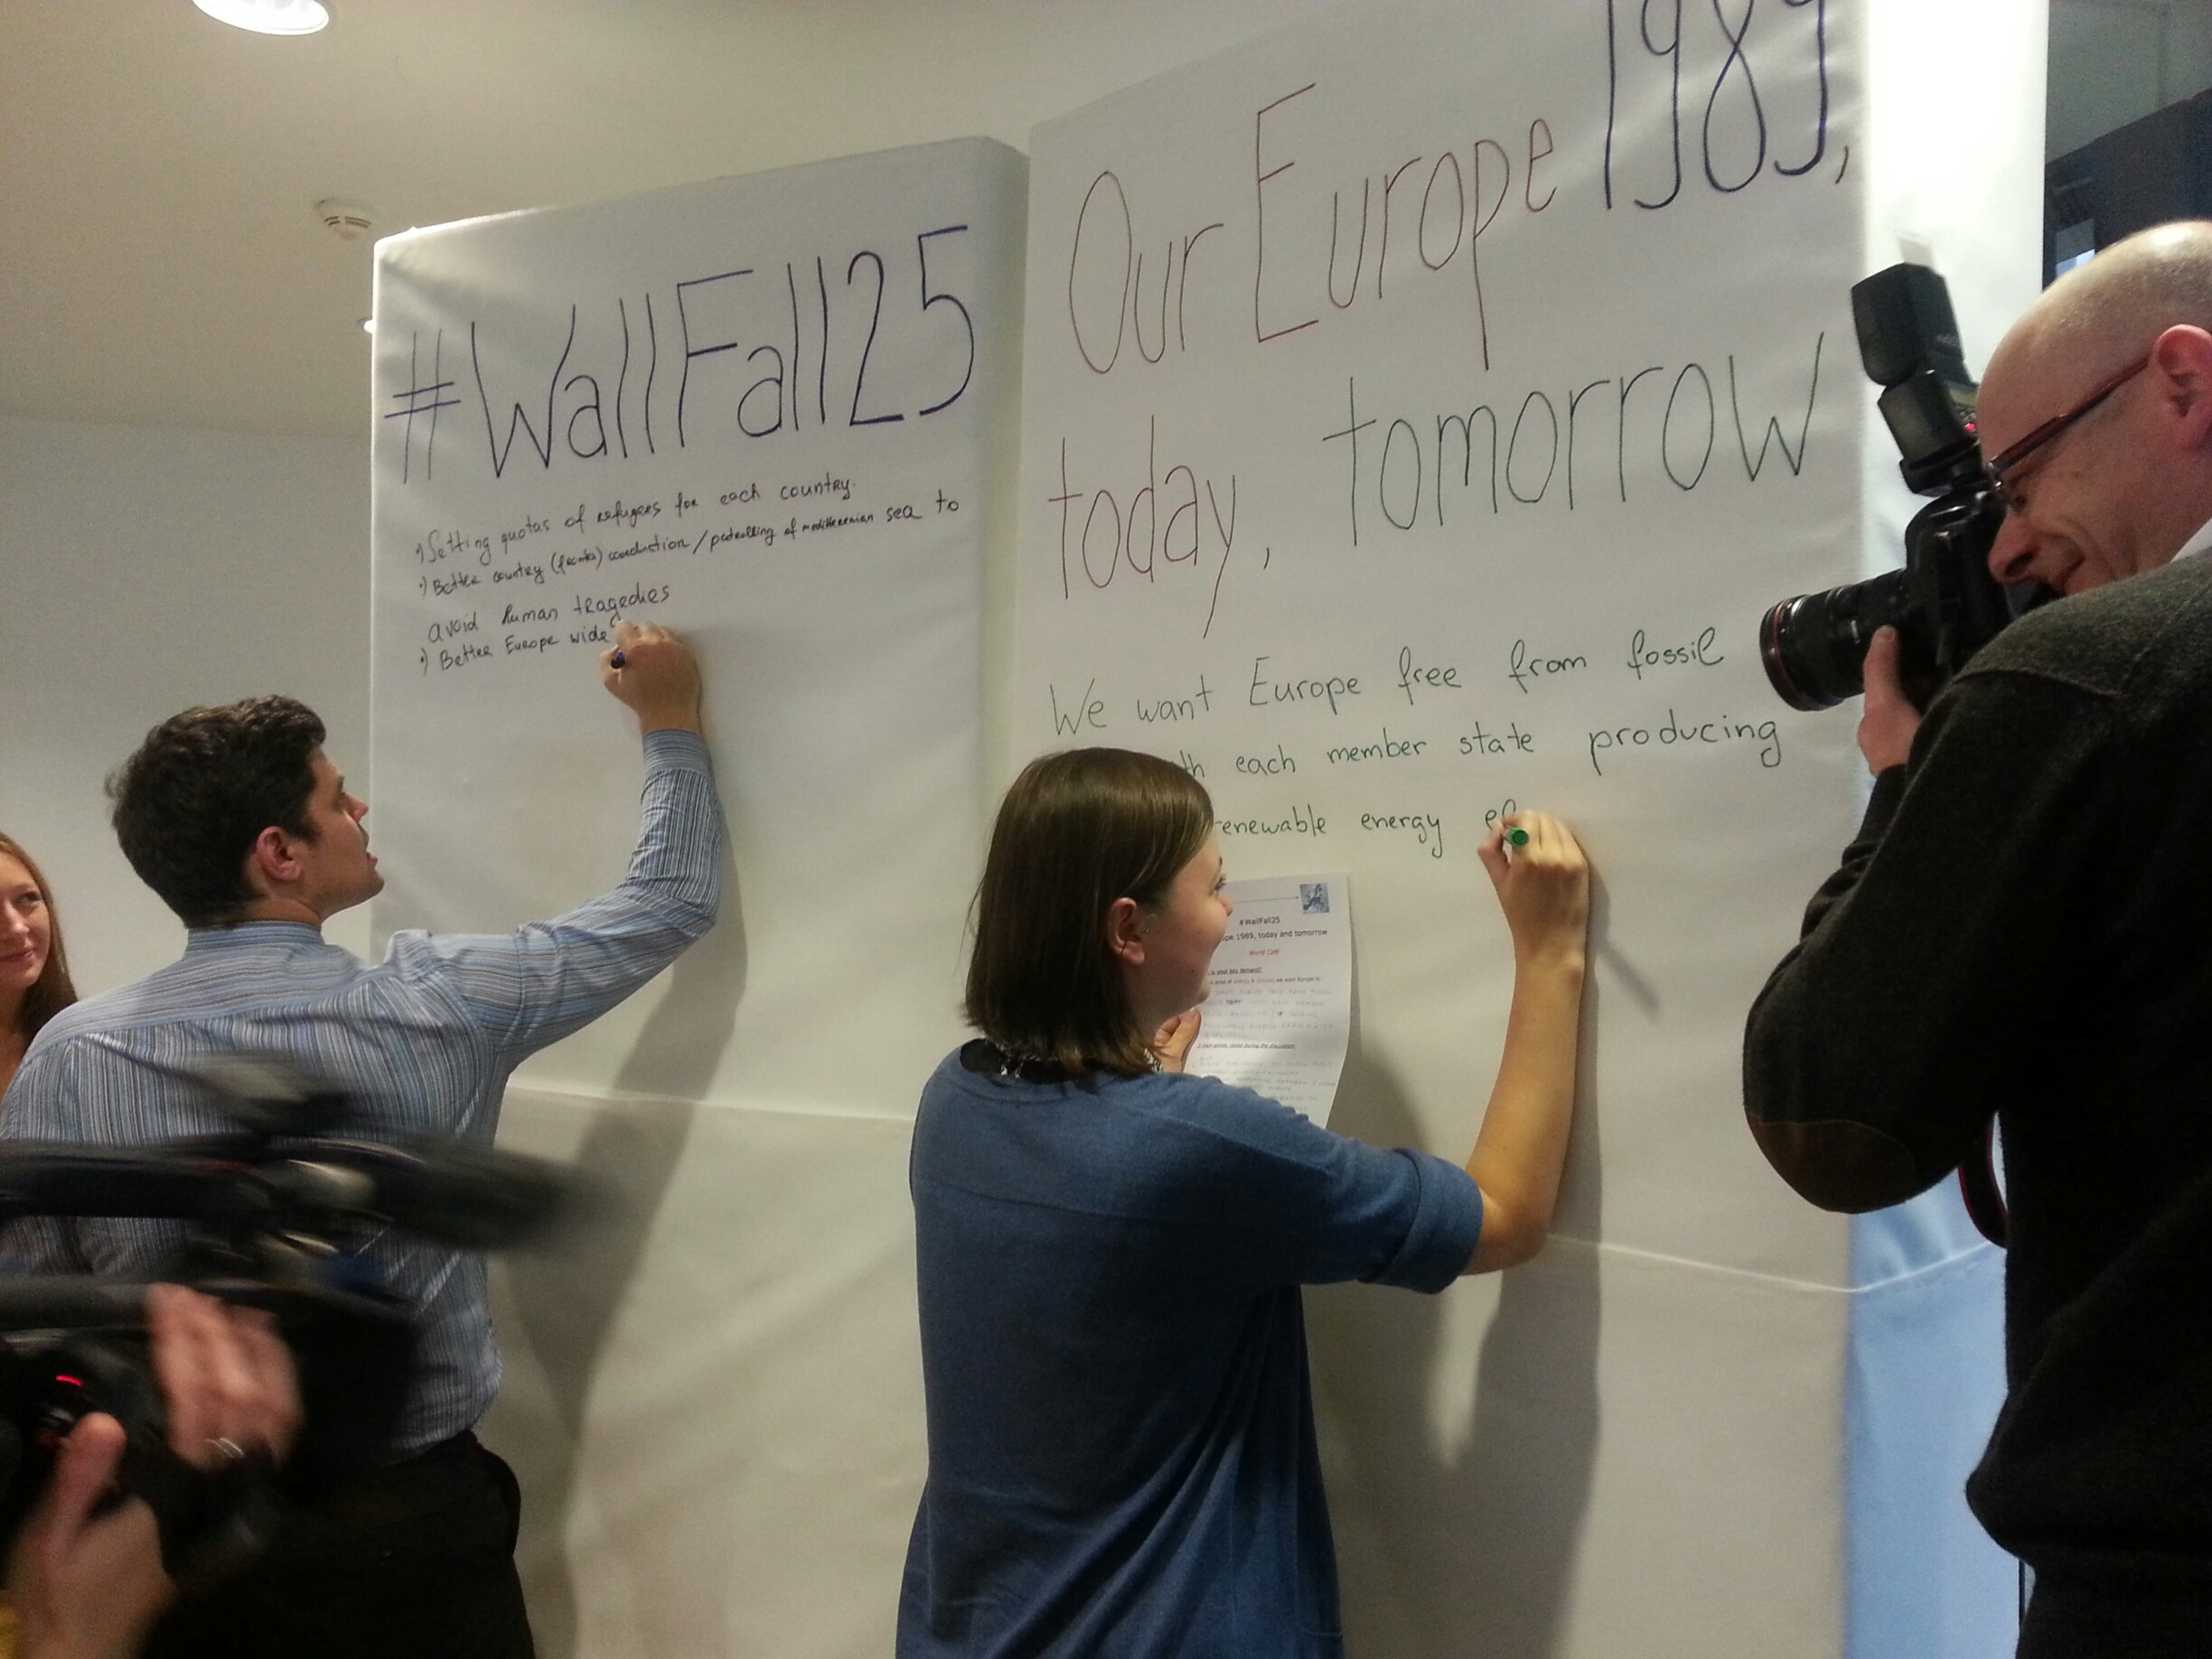 Berlin Manifesto for Europe – results of #WallFall25